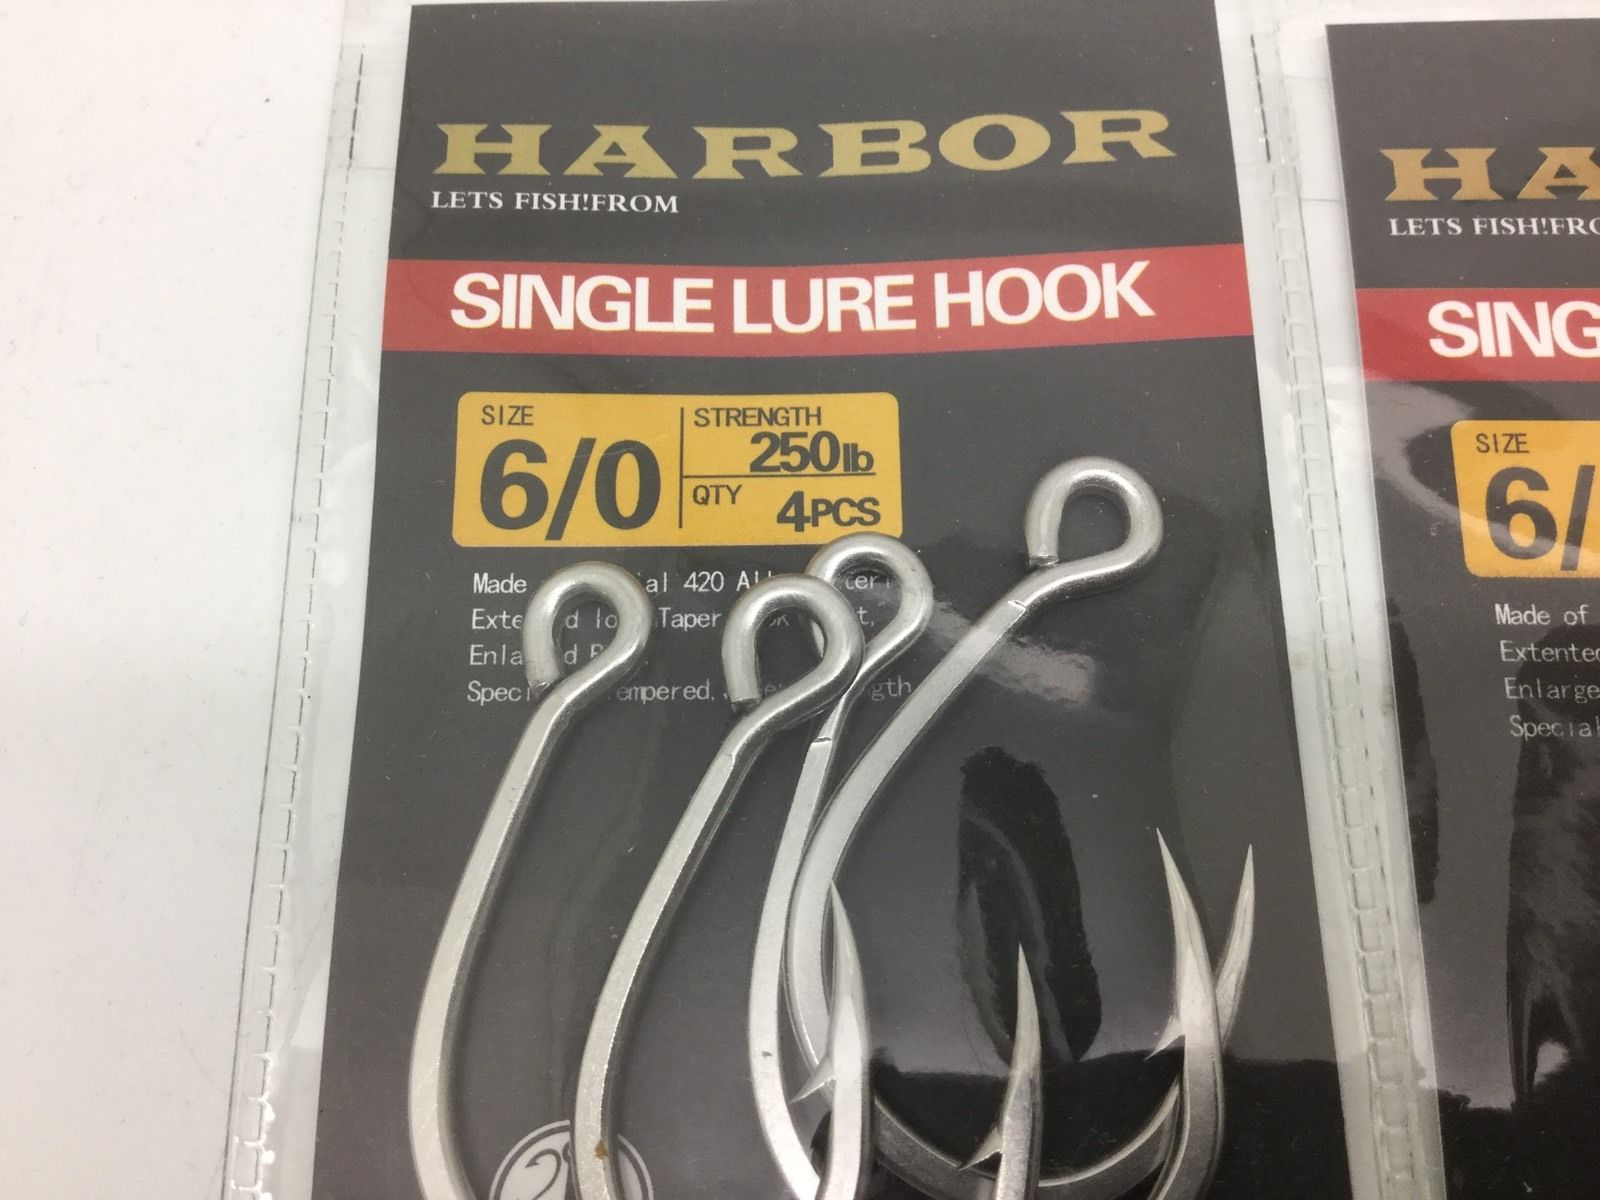 Hooks harbor Straight Eye 6/0 Replacements For Rapala Hardbodys 8 Inch